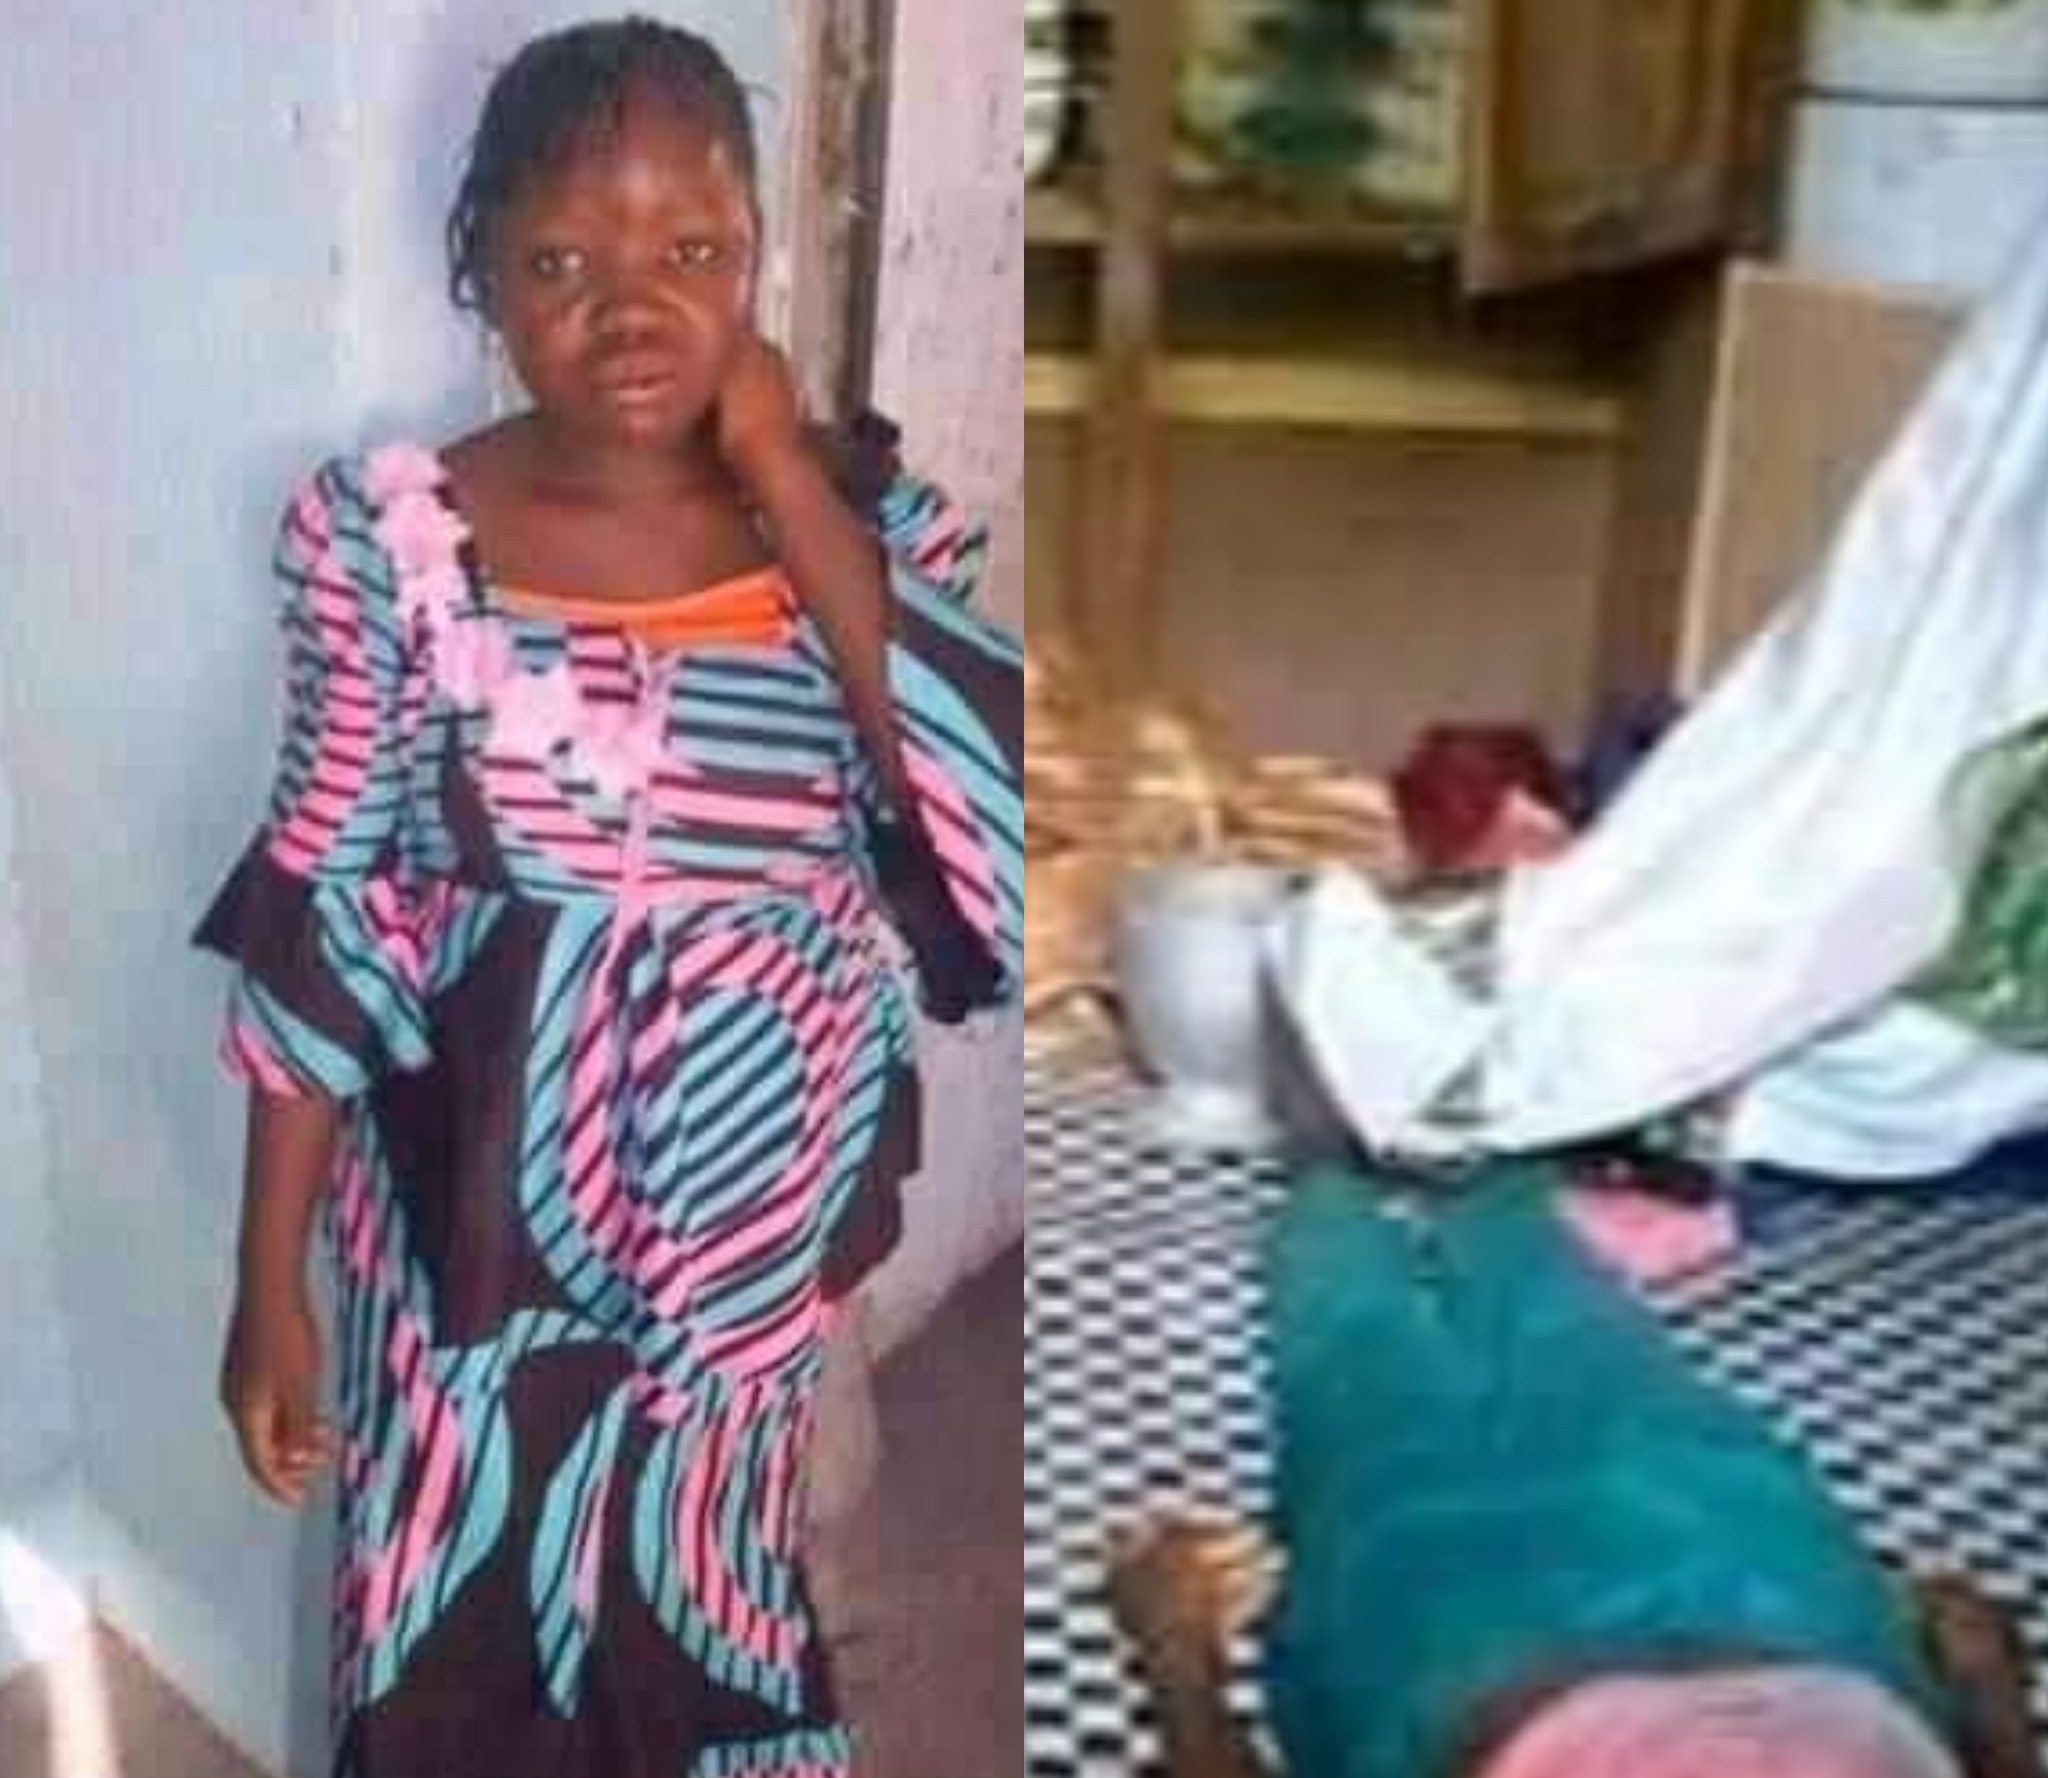 Teen housewife stabs her husband to death in Bauchi